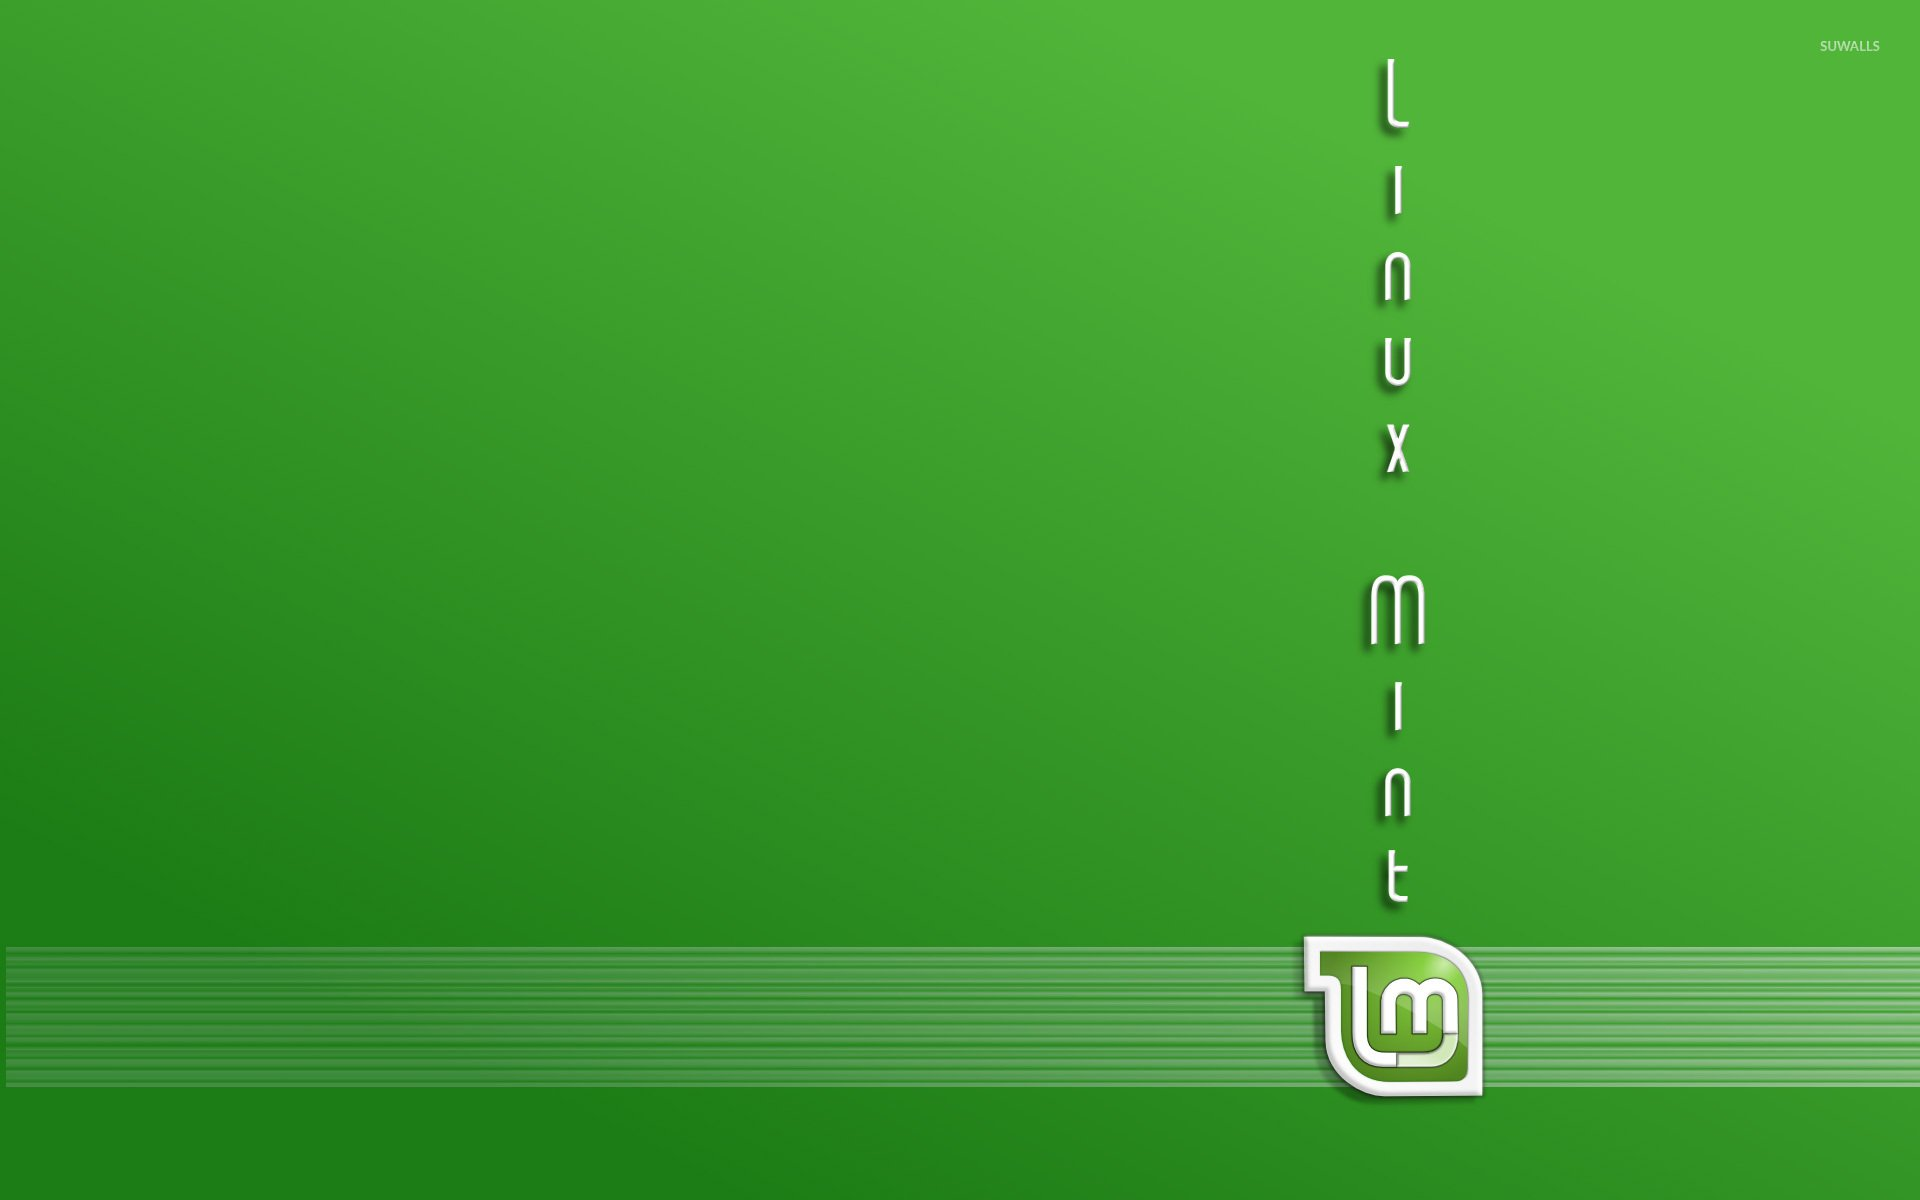 Linux Mint wallpaper   Computer wallpapers   8018 1366x768